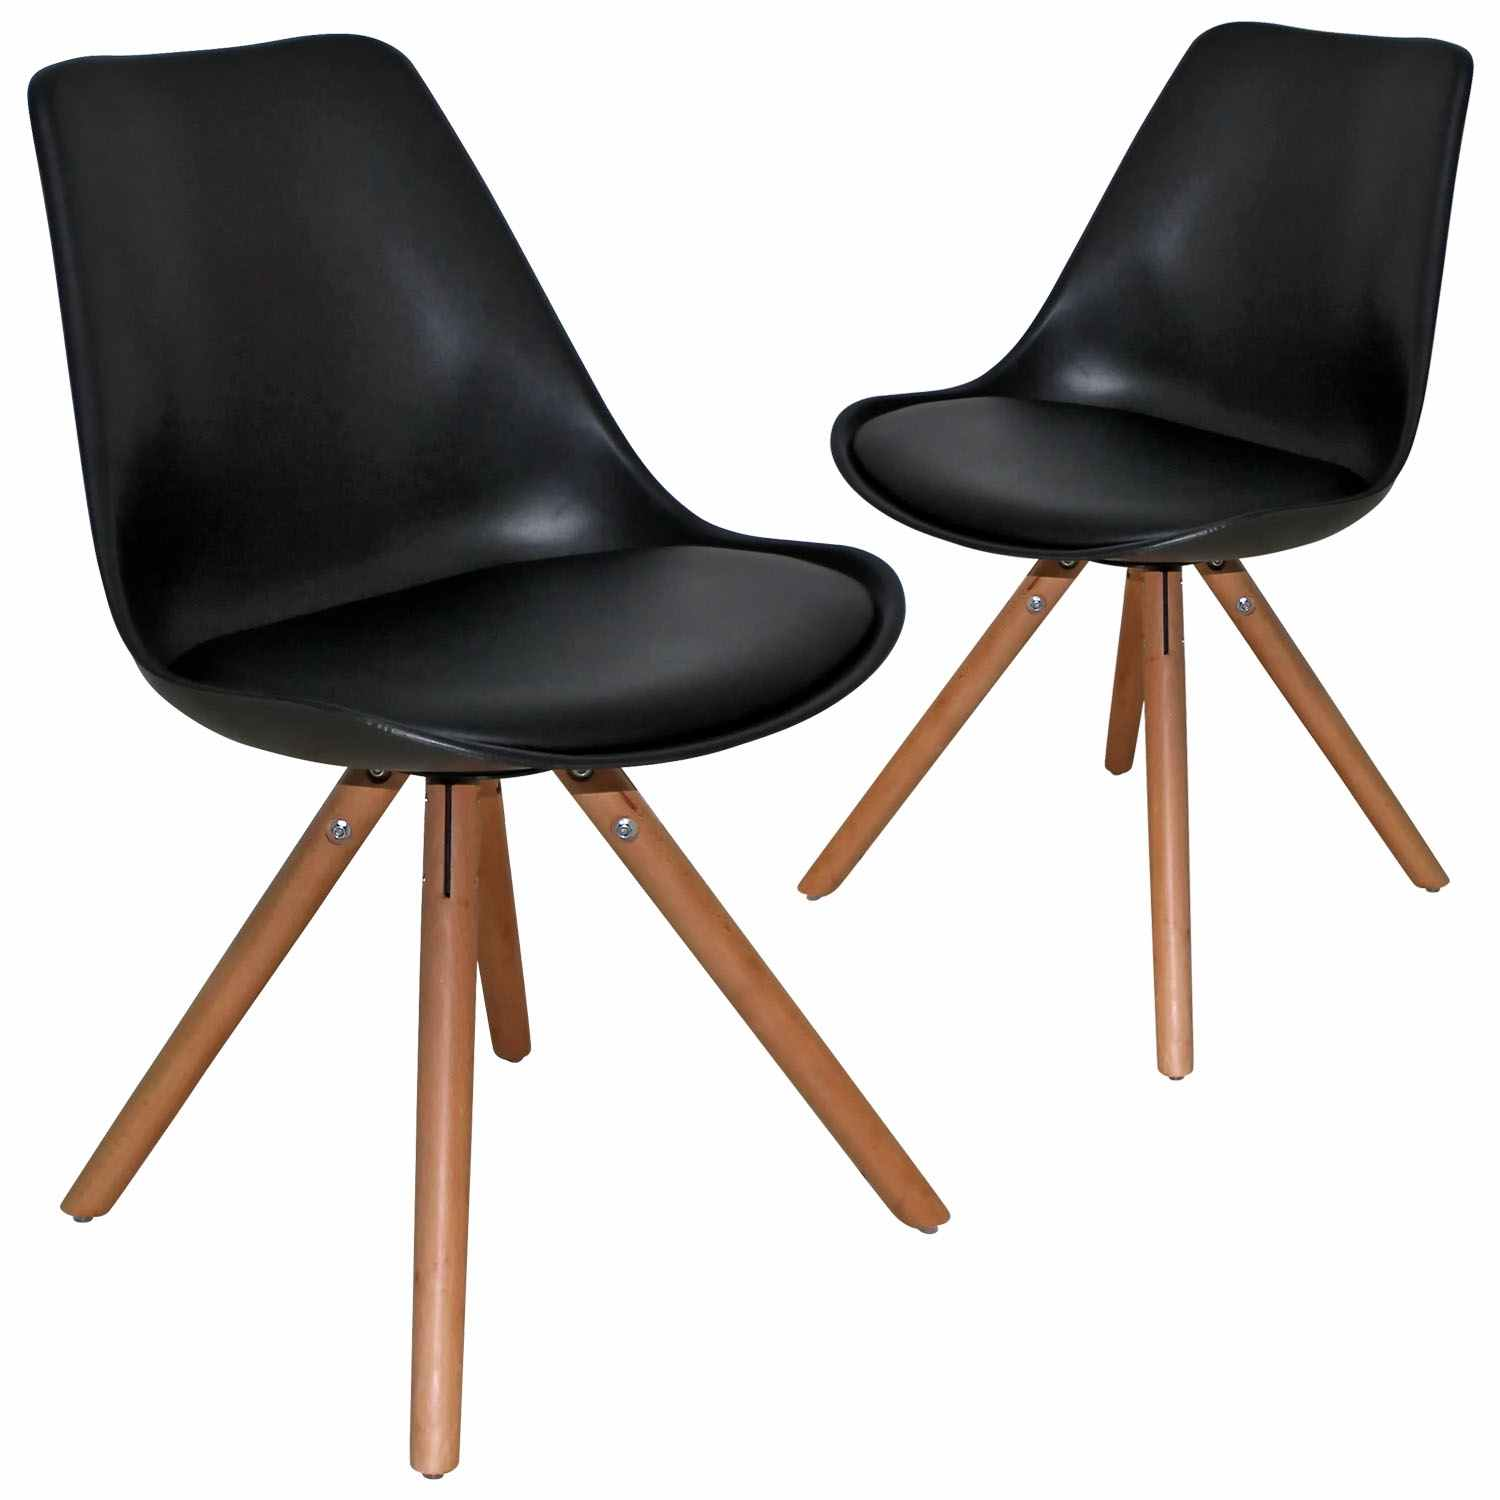 DECO IN PARIS 3lot De 2 Chaises Design Noir Velta Velta